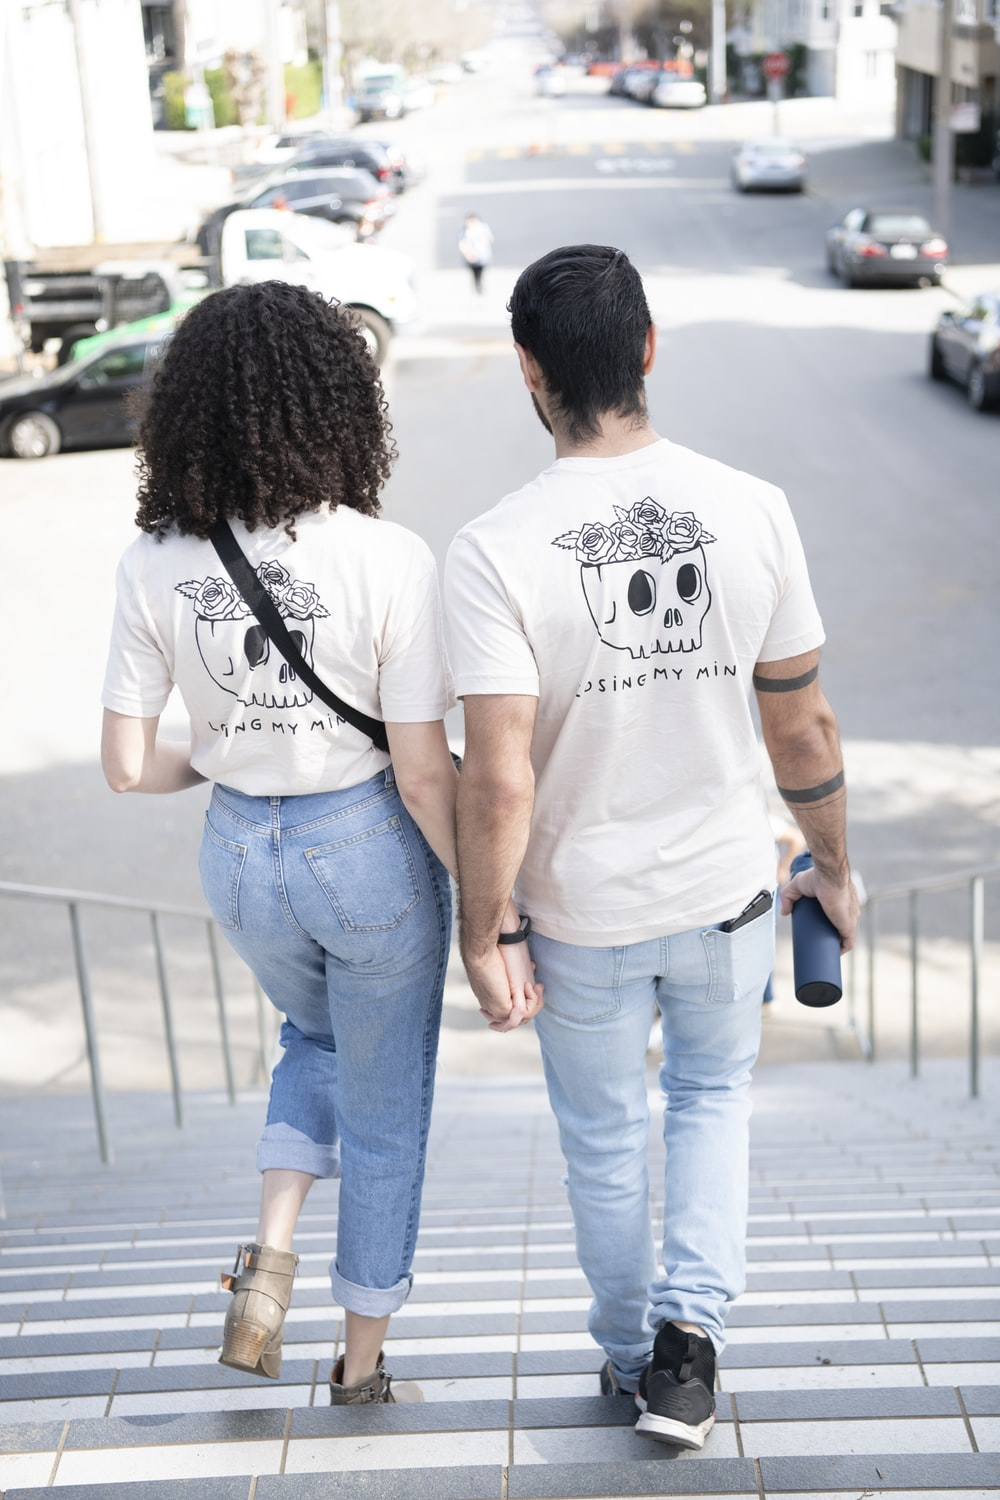 man in white crew neck t-shirt and woman in blue denim jeans walking on sidewalk